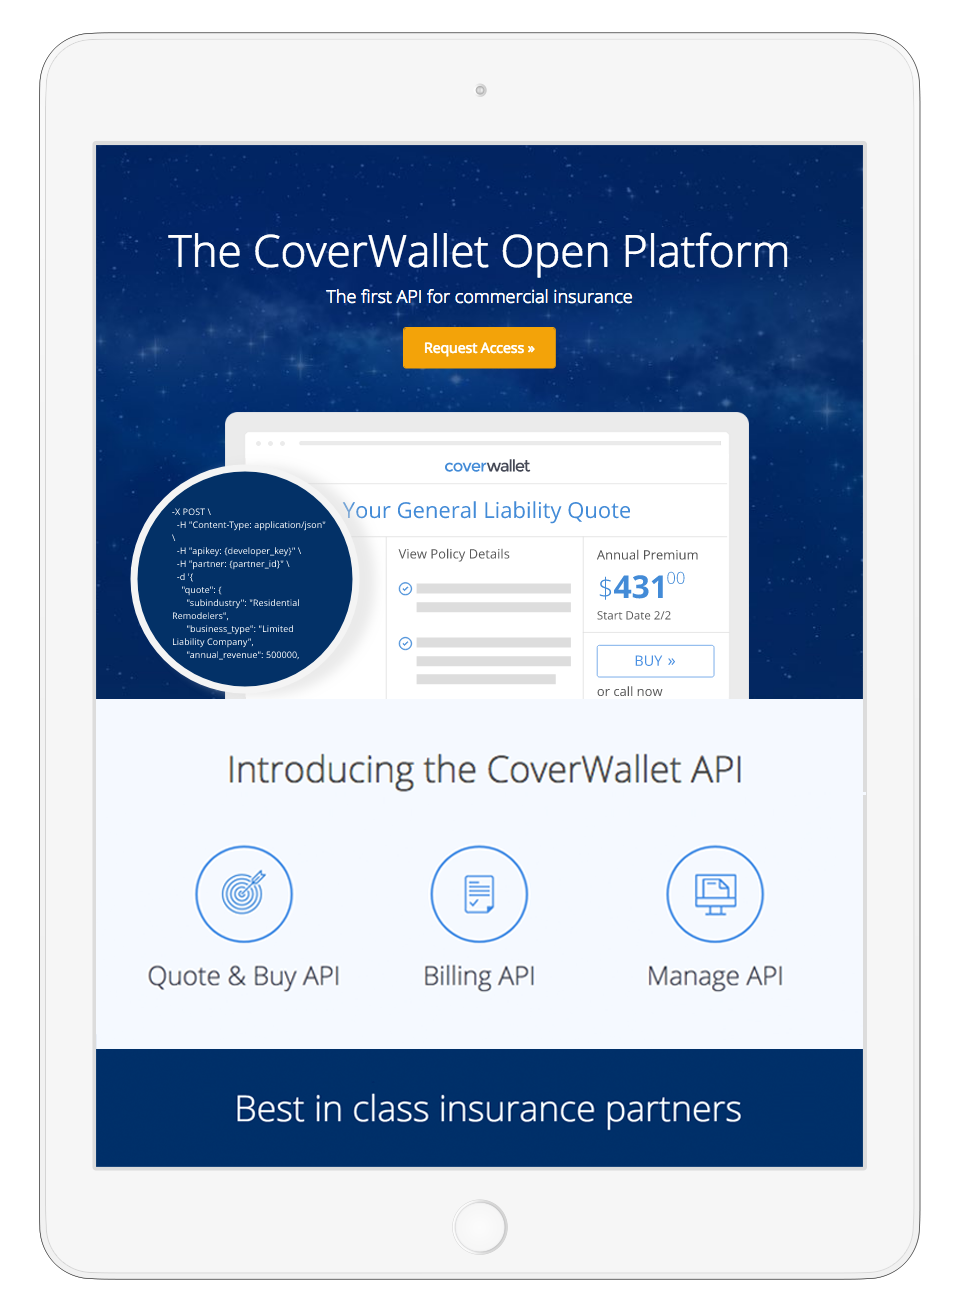 CoverWallet looks to make it easy for businesses to get commercial insurance